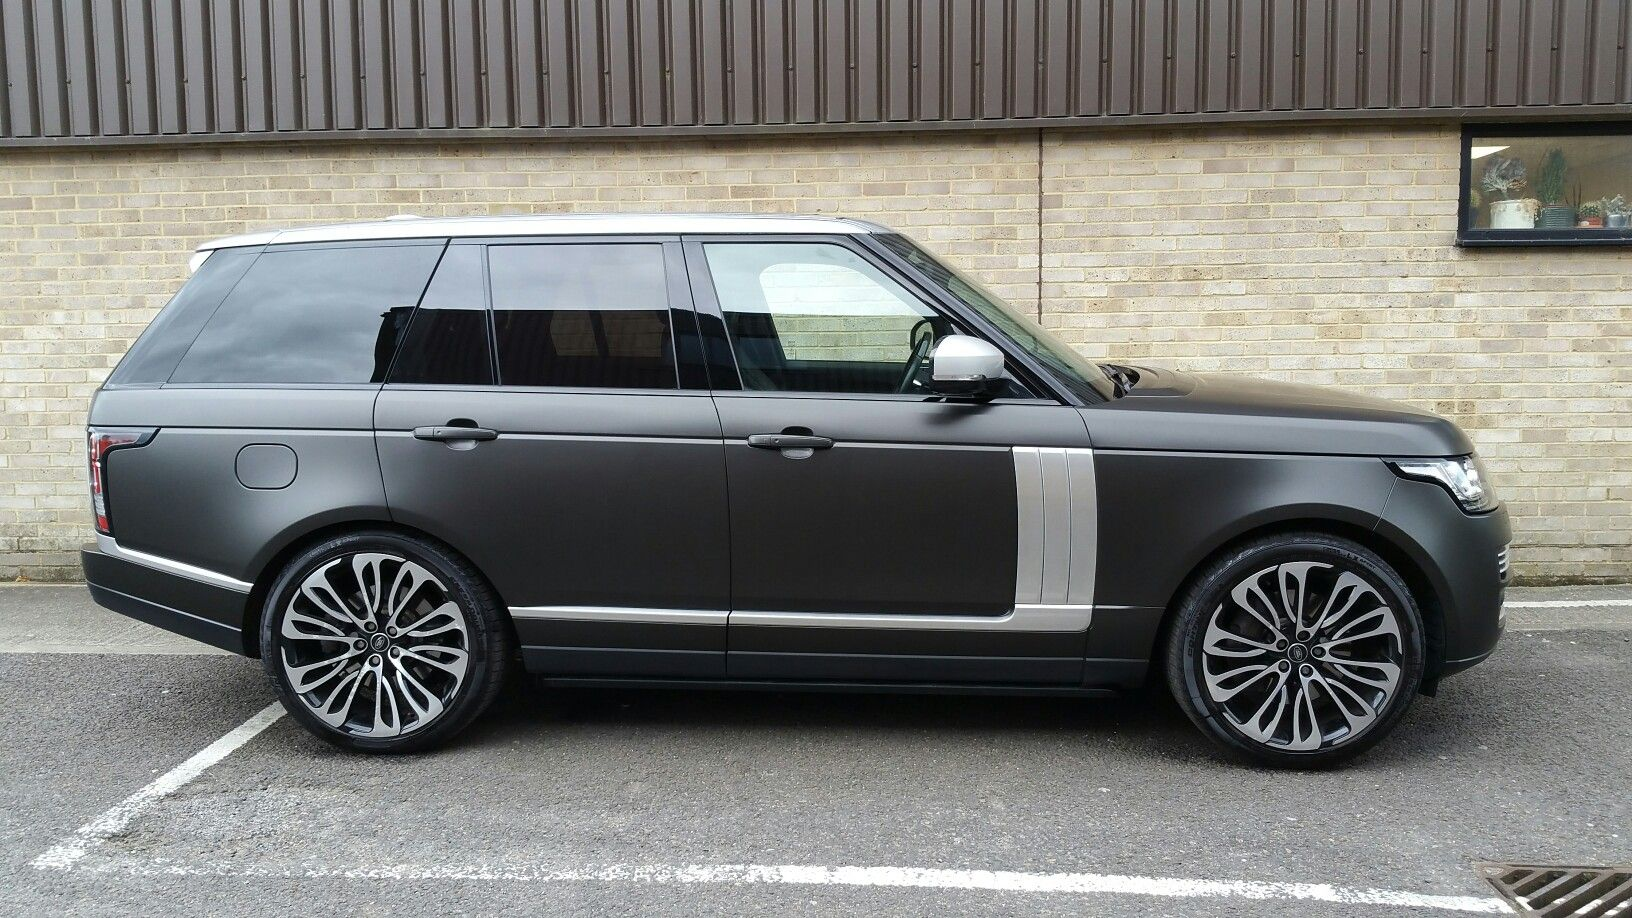 Range rover wrapped in our exclusive pwf diamond matt black